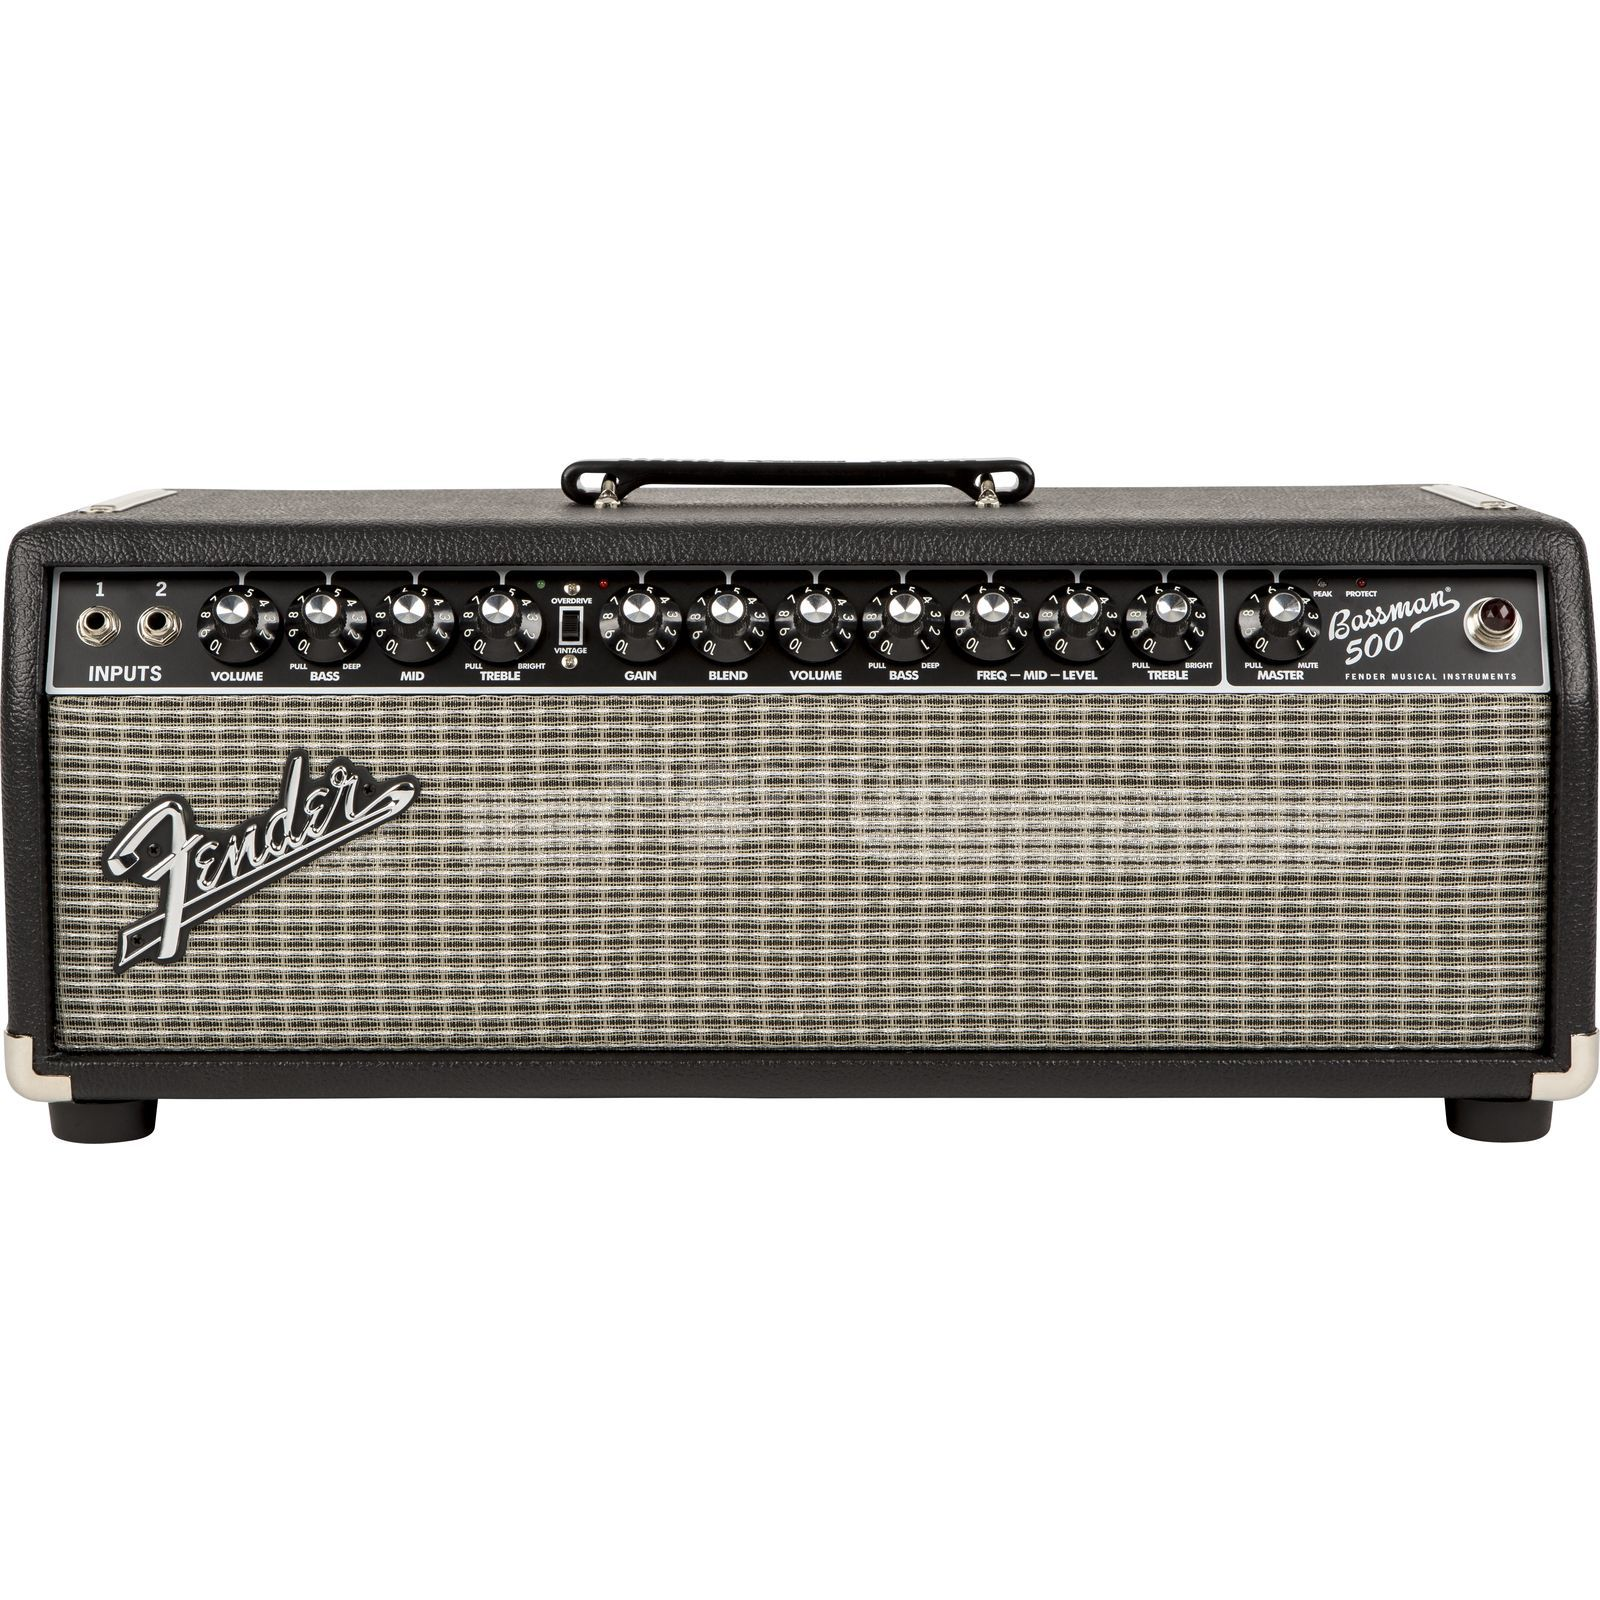 Fender basman 500 Head  Productafbeelding